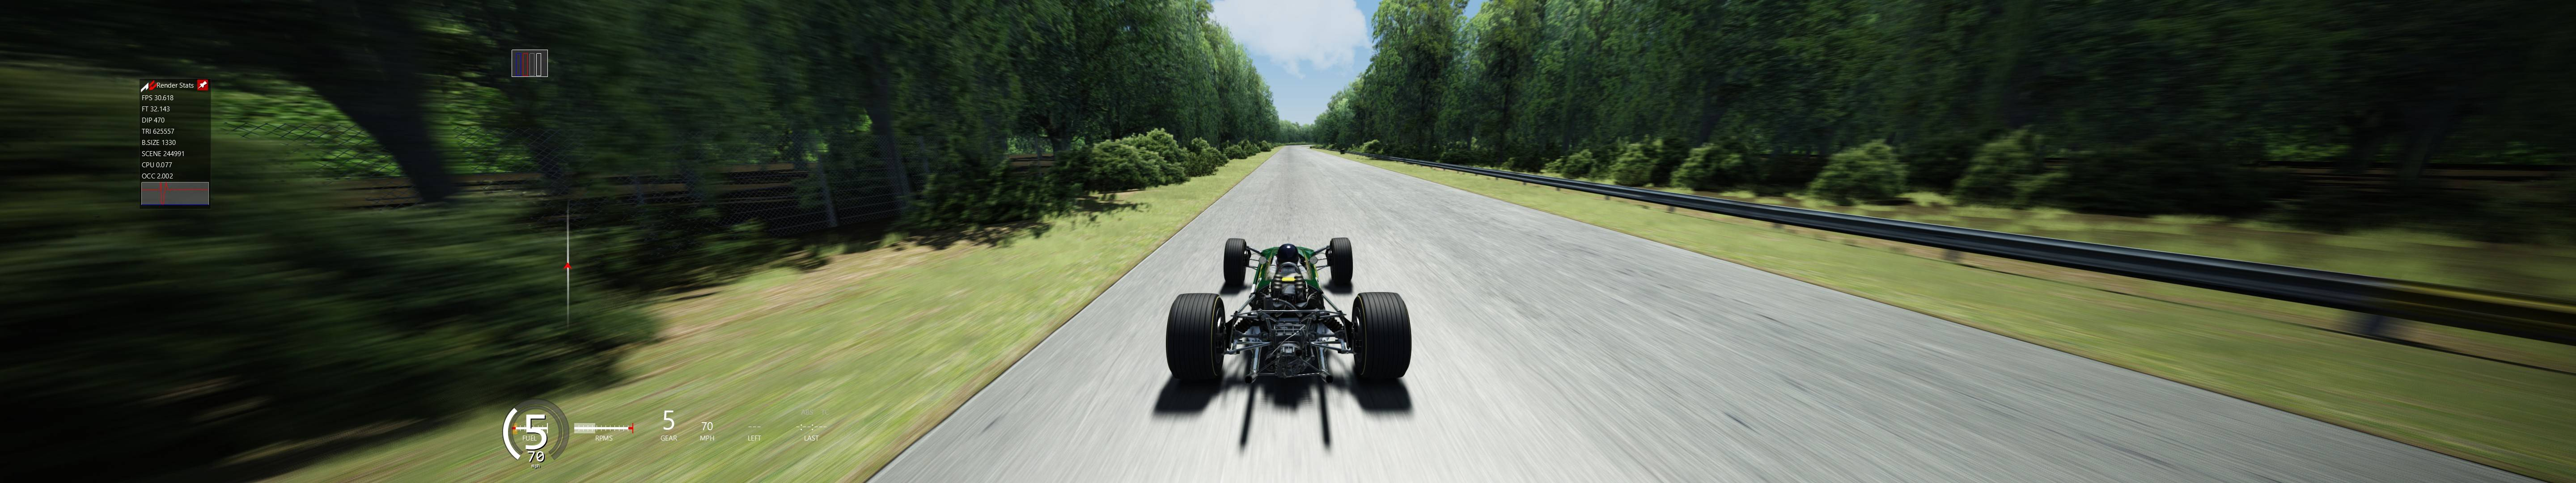 5760x1080 Wallpaper Racing for Pinterest 5760x1080